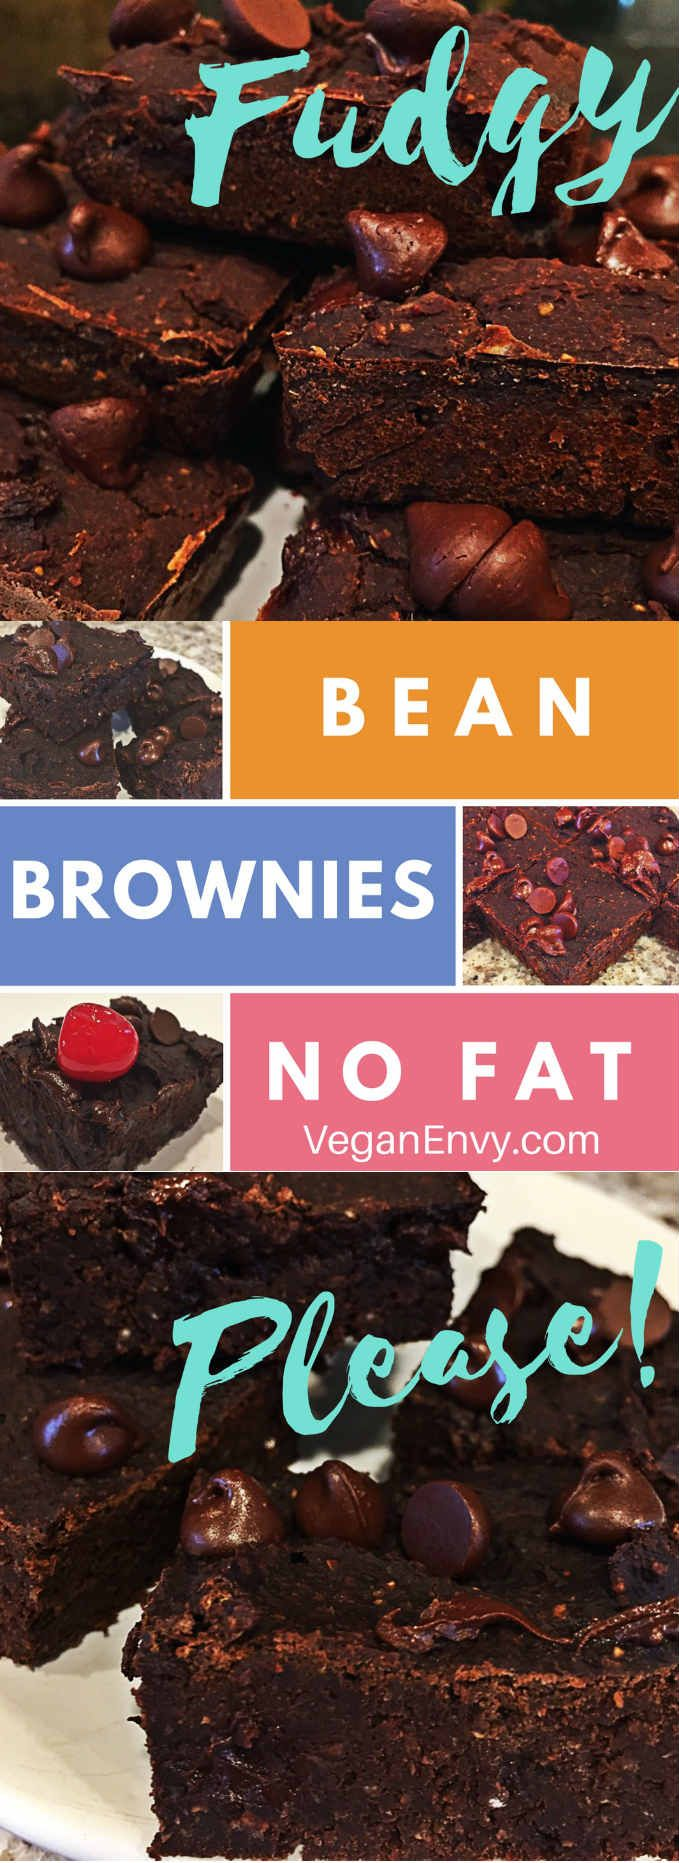 We ate all the brownies, but that was good, because they are whole foods brownies.  Made from white beans, dates, fruit and lots and lots of chocolate.  YUM. Click image for recipe.